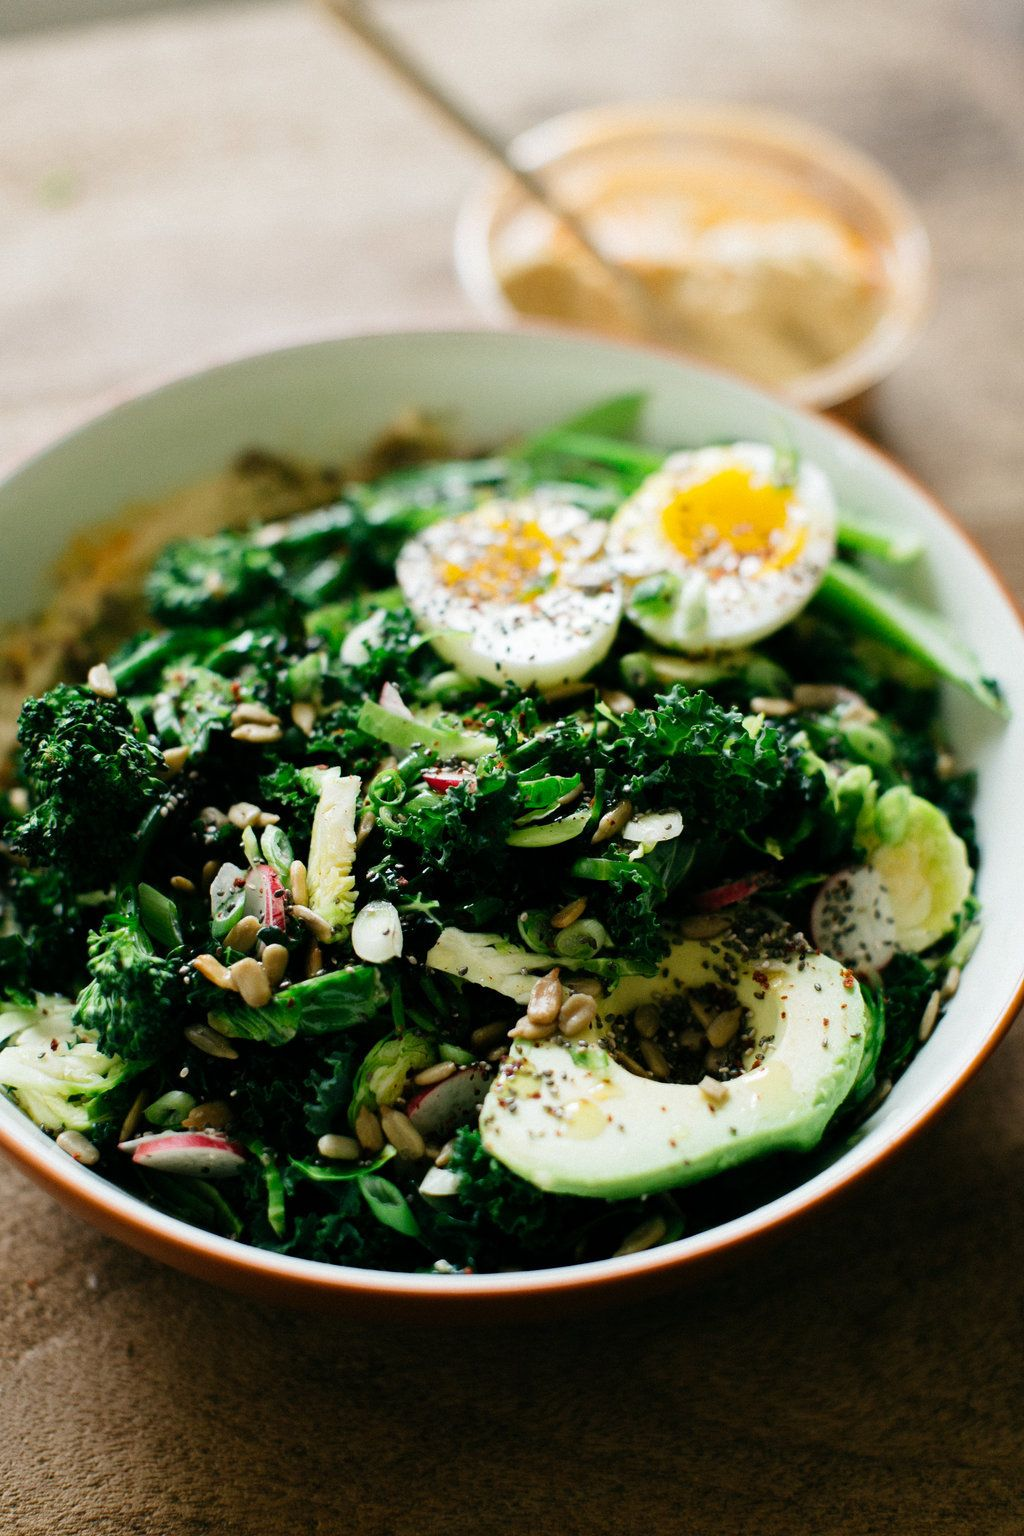 This Hummus, Greens, & Avo Bowl Is Next-Level Healthy - Camille Styles